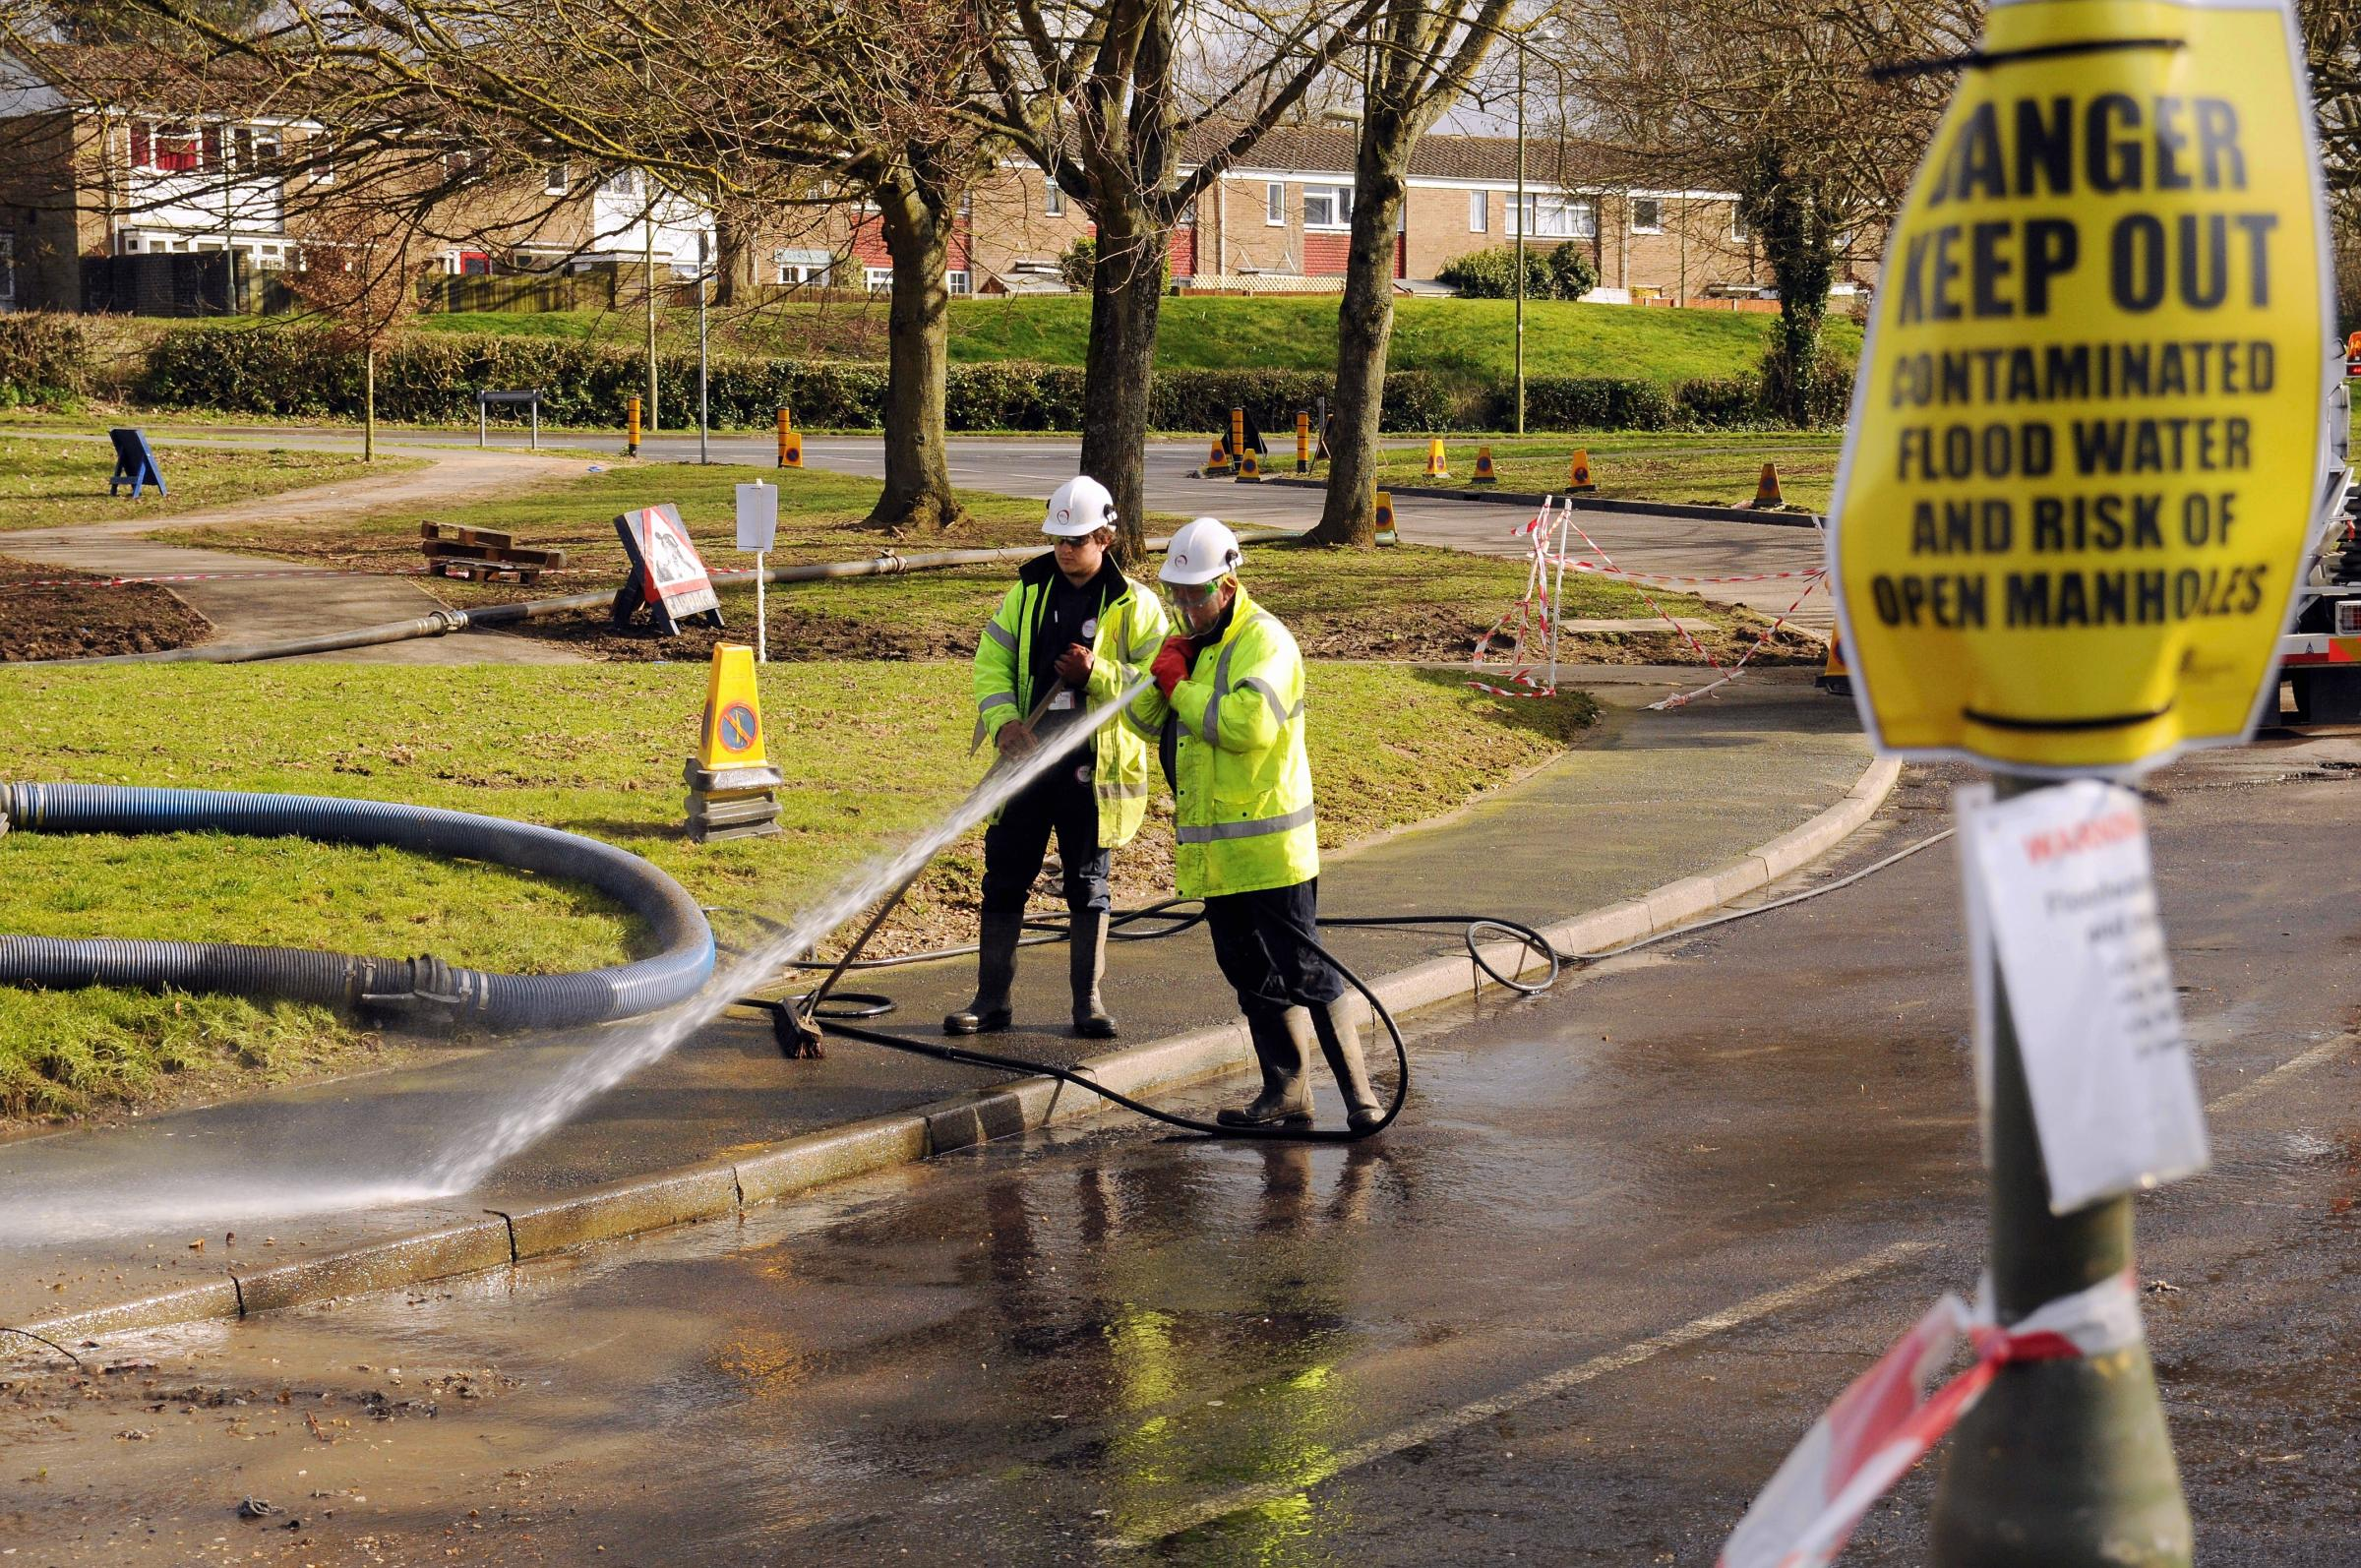 Thames Water workers start the clean-up in Buckskin as the flood waters finally recede.